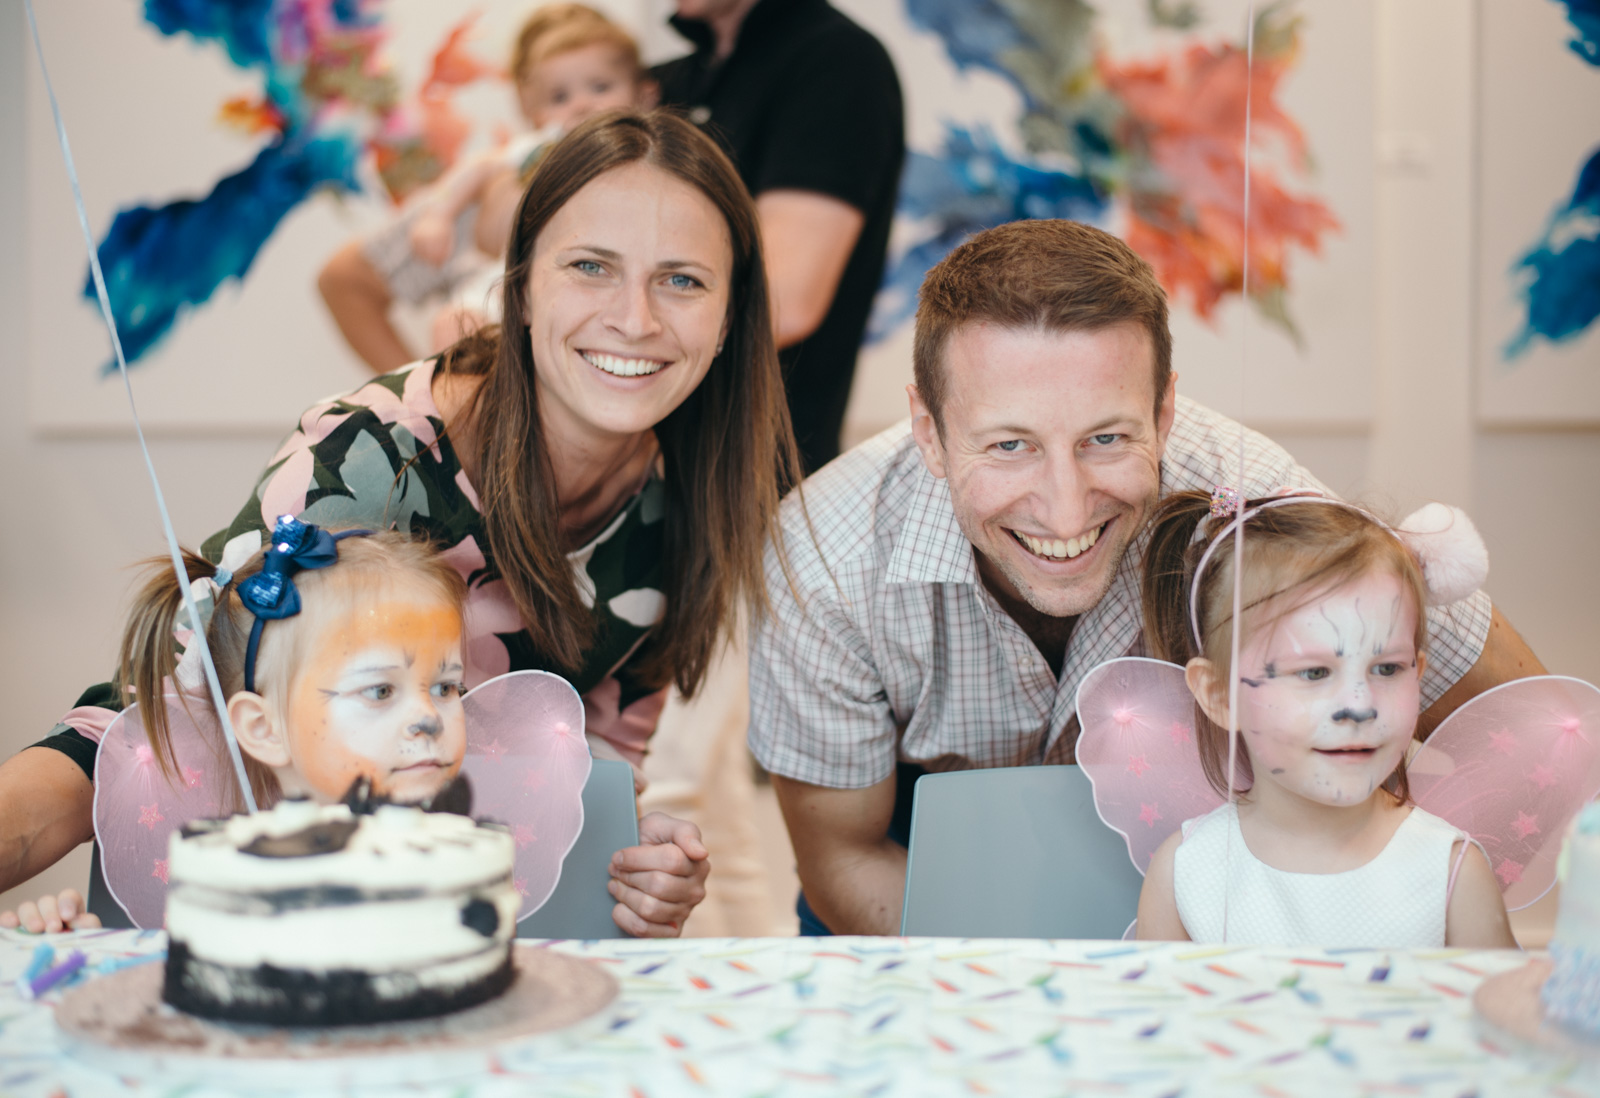 CHILDREN's BIRTHDAY PARTY - Perfect to capture magic of your child's birthday party